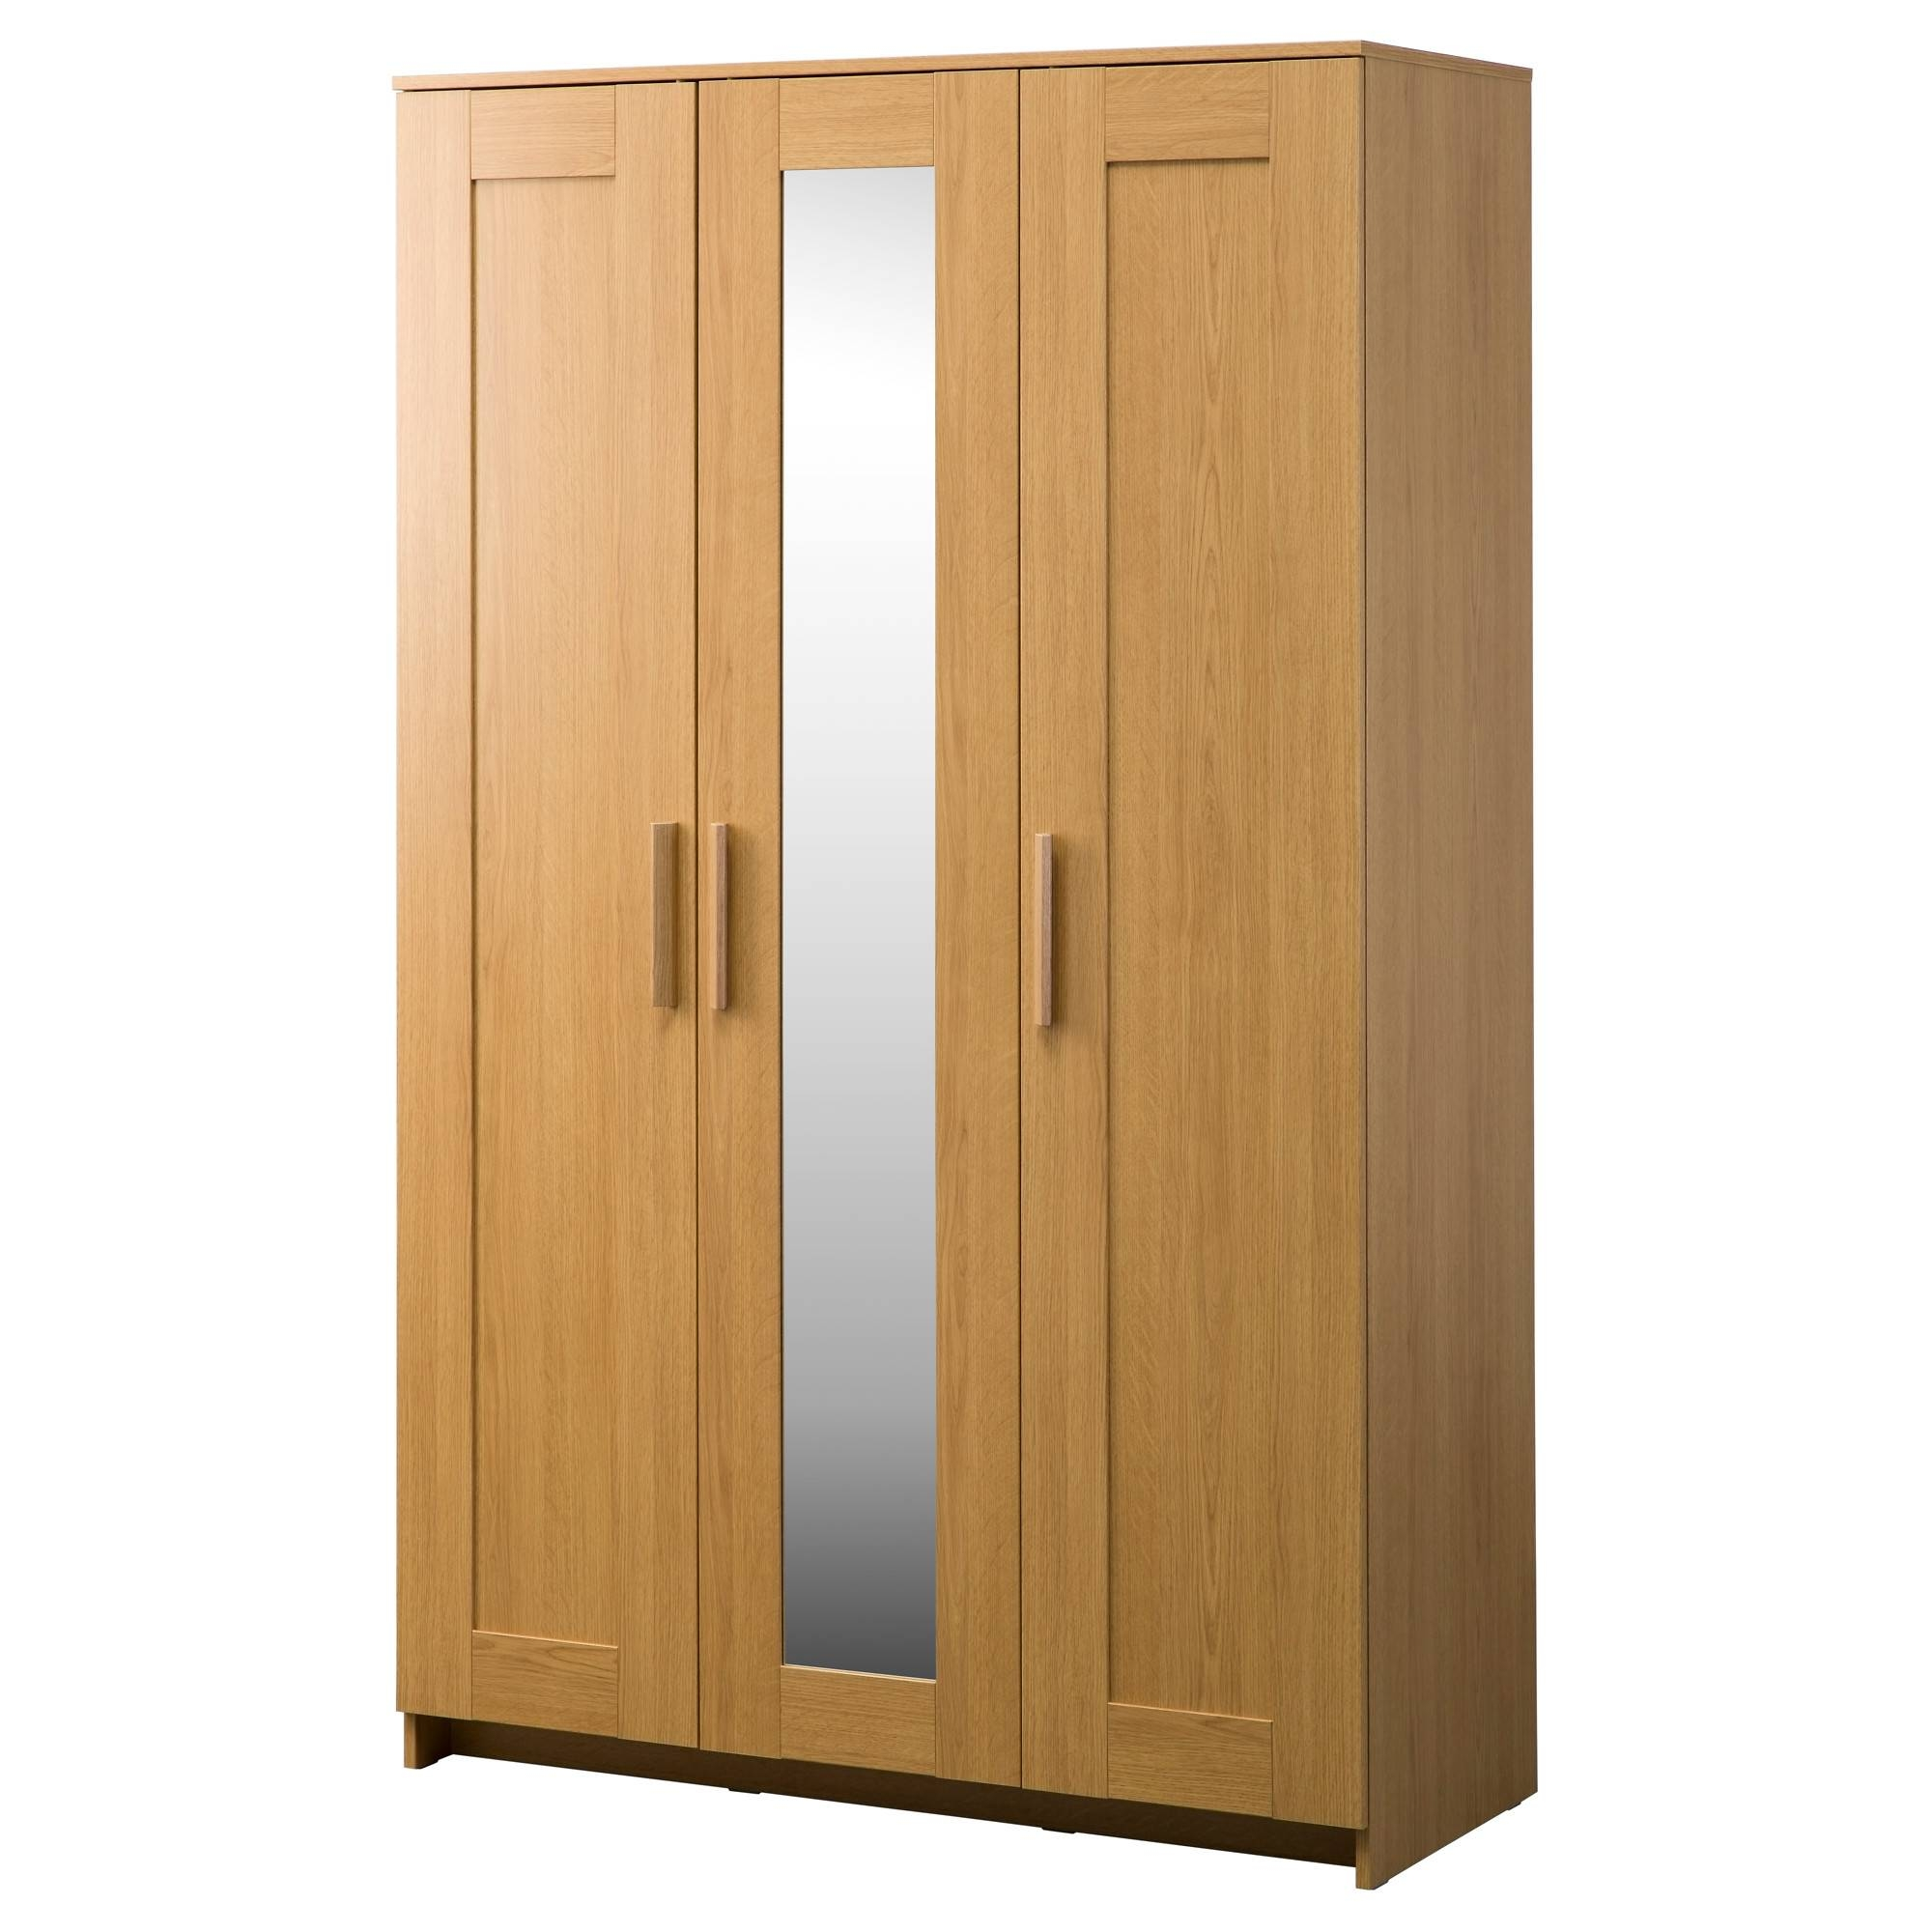 Wardrobes | Ikea pertaining to Cheap Solid Wood Wardrobes (Image 15 of 15)